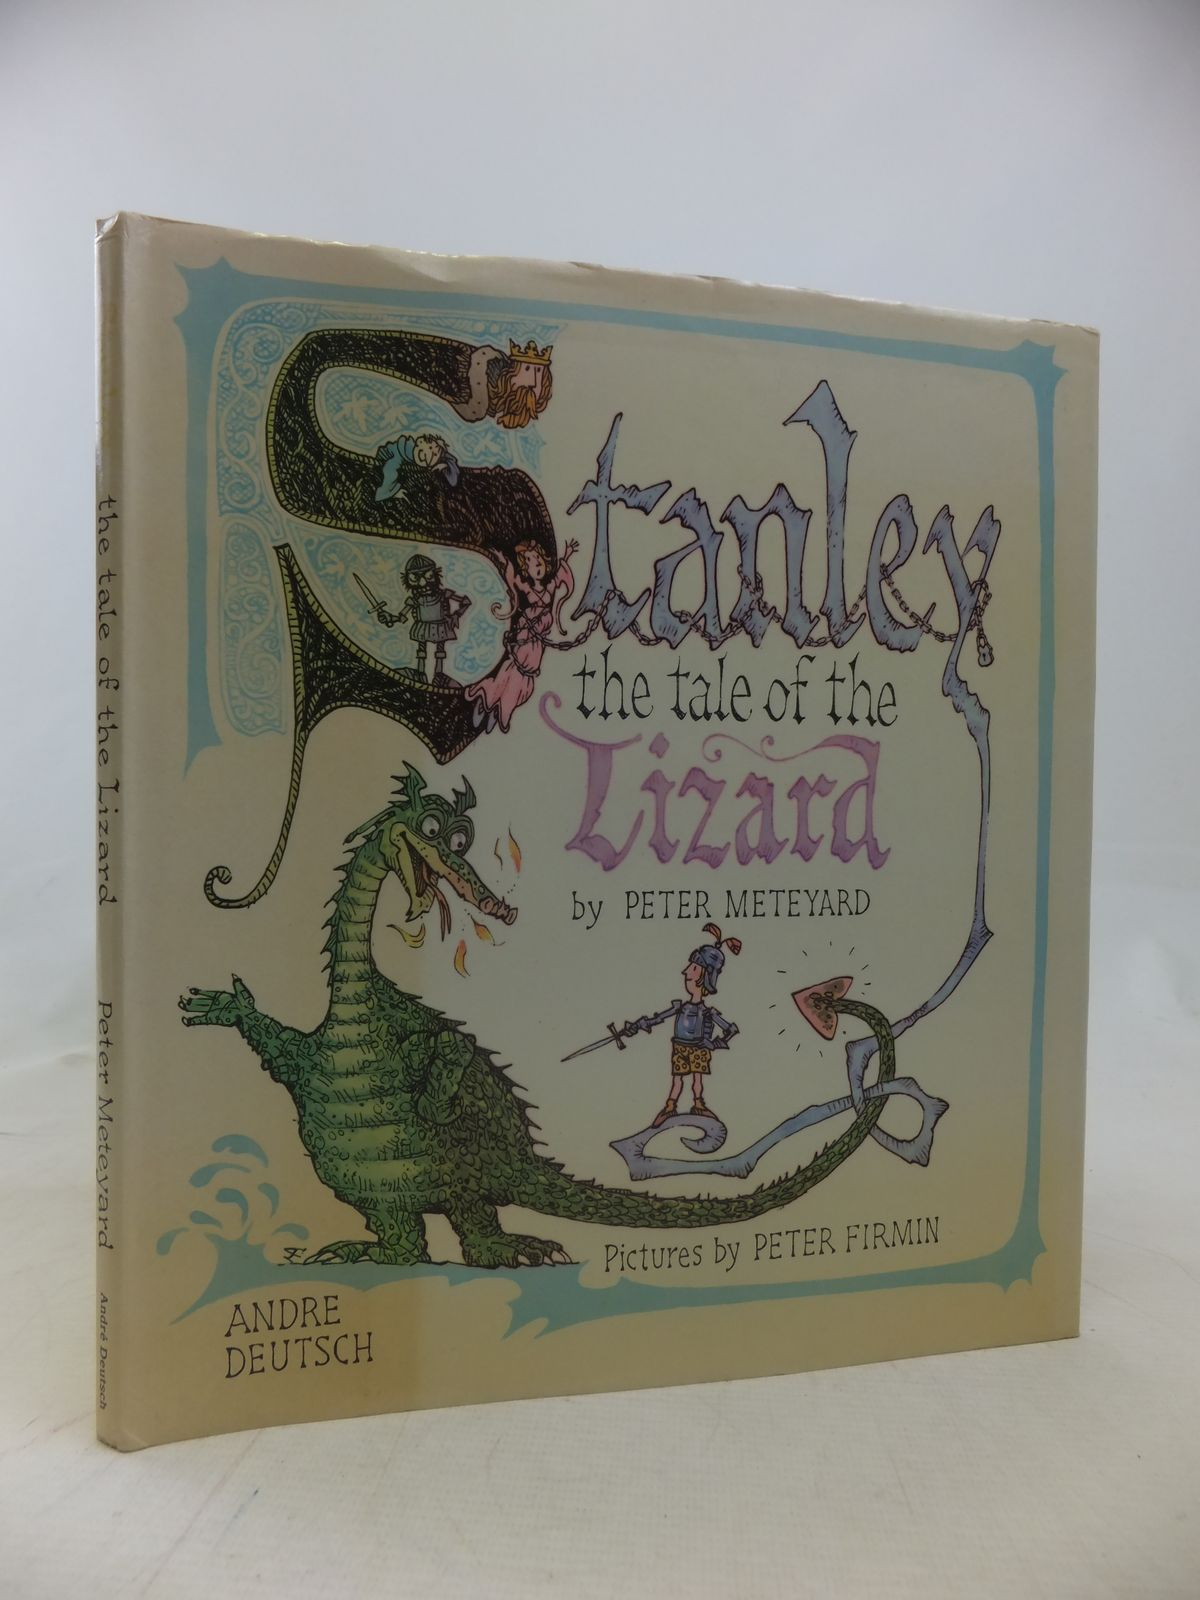 Photo of STANLEY THE TALE OF THE LIZARD written by Meteyard, Peter illustrated by Firmin, Peter published by Andre Deutsch (STOCK CODE: 1809617)  for sale by Stella & Rose's Books